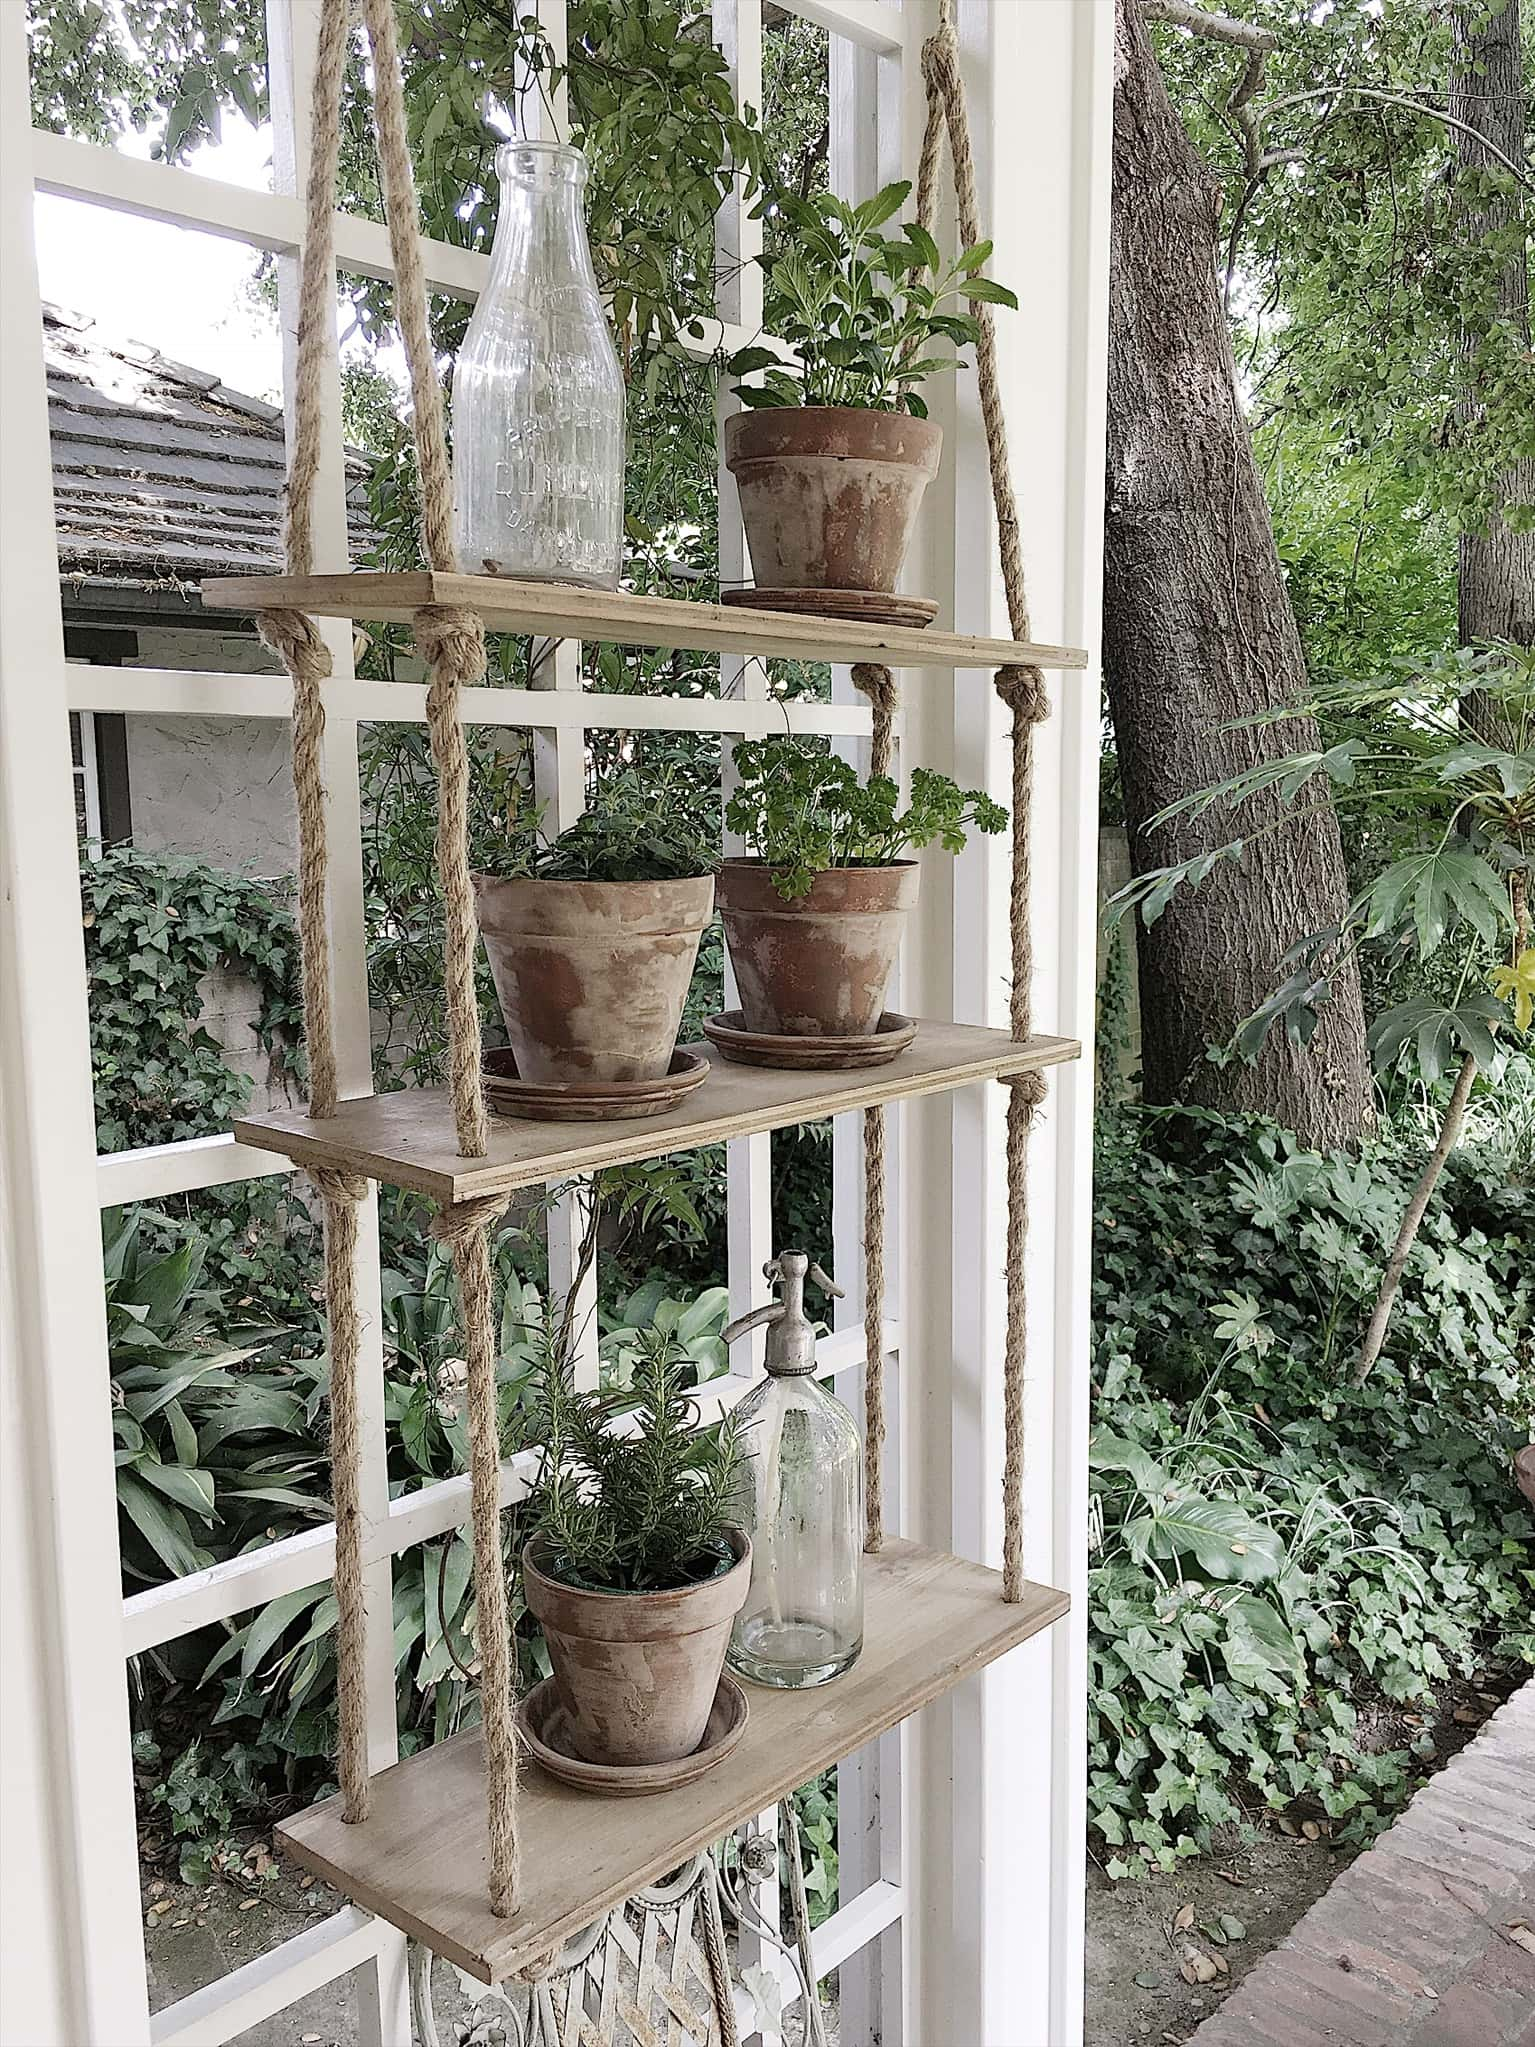 Aged terracotta pots sitting on outdoor hanging shelves